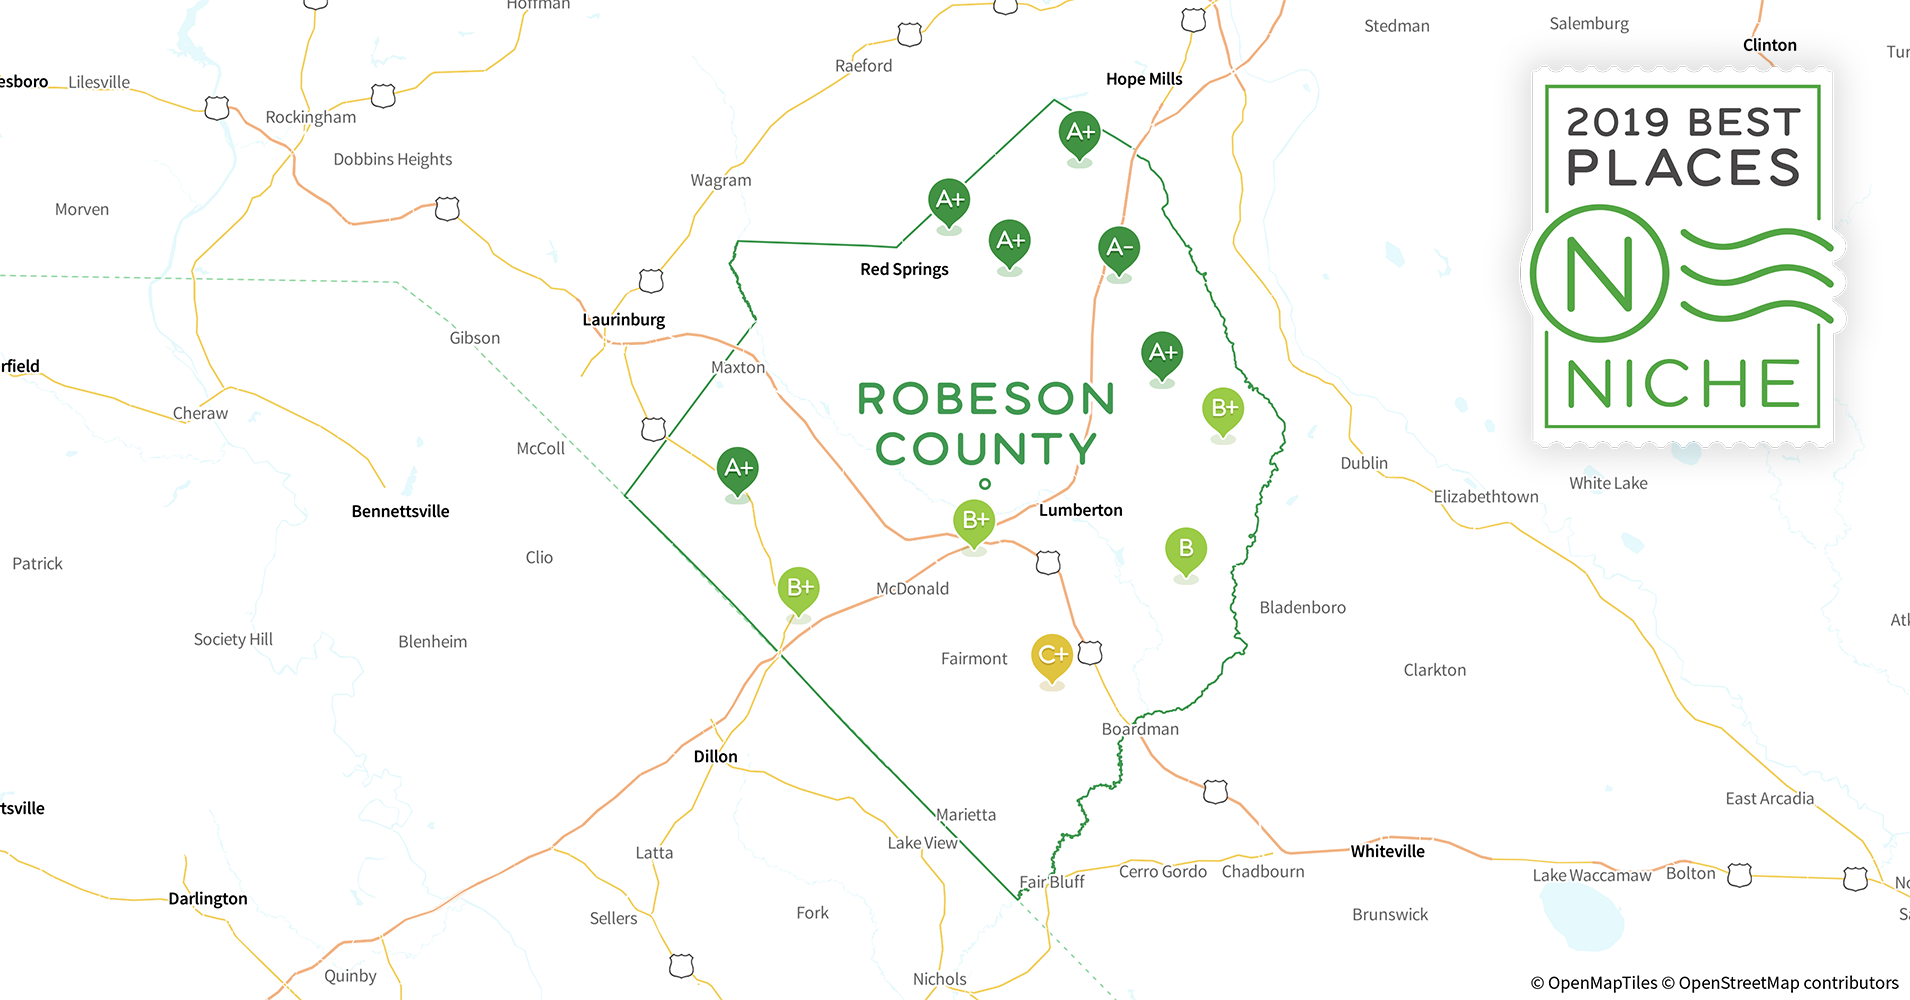 2019 Safe Places To Live In Robeson County Nc Niche